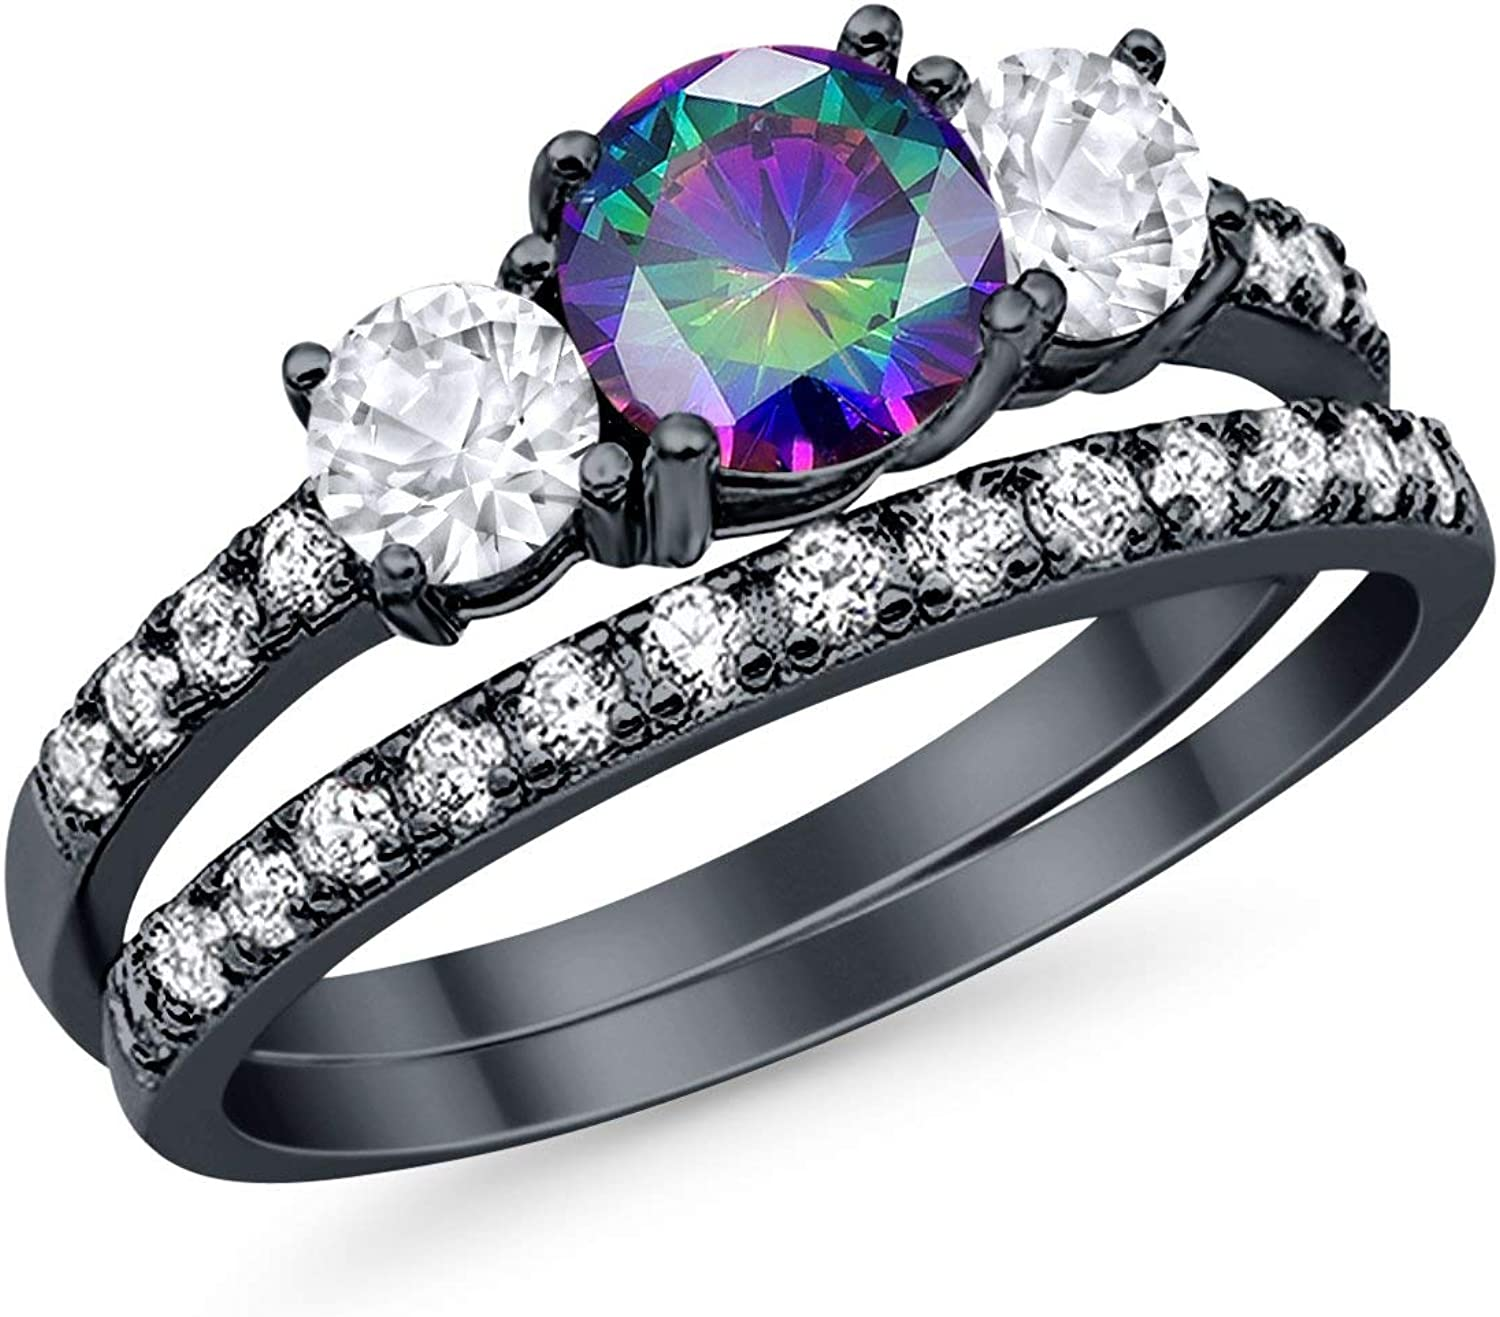 Blue Apple Co. 3-Stone Wedding Bridal Set Ring Band 925 Sterling Silver